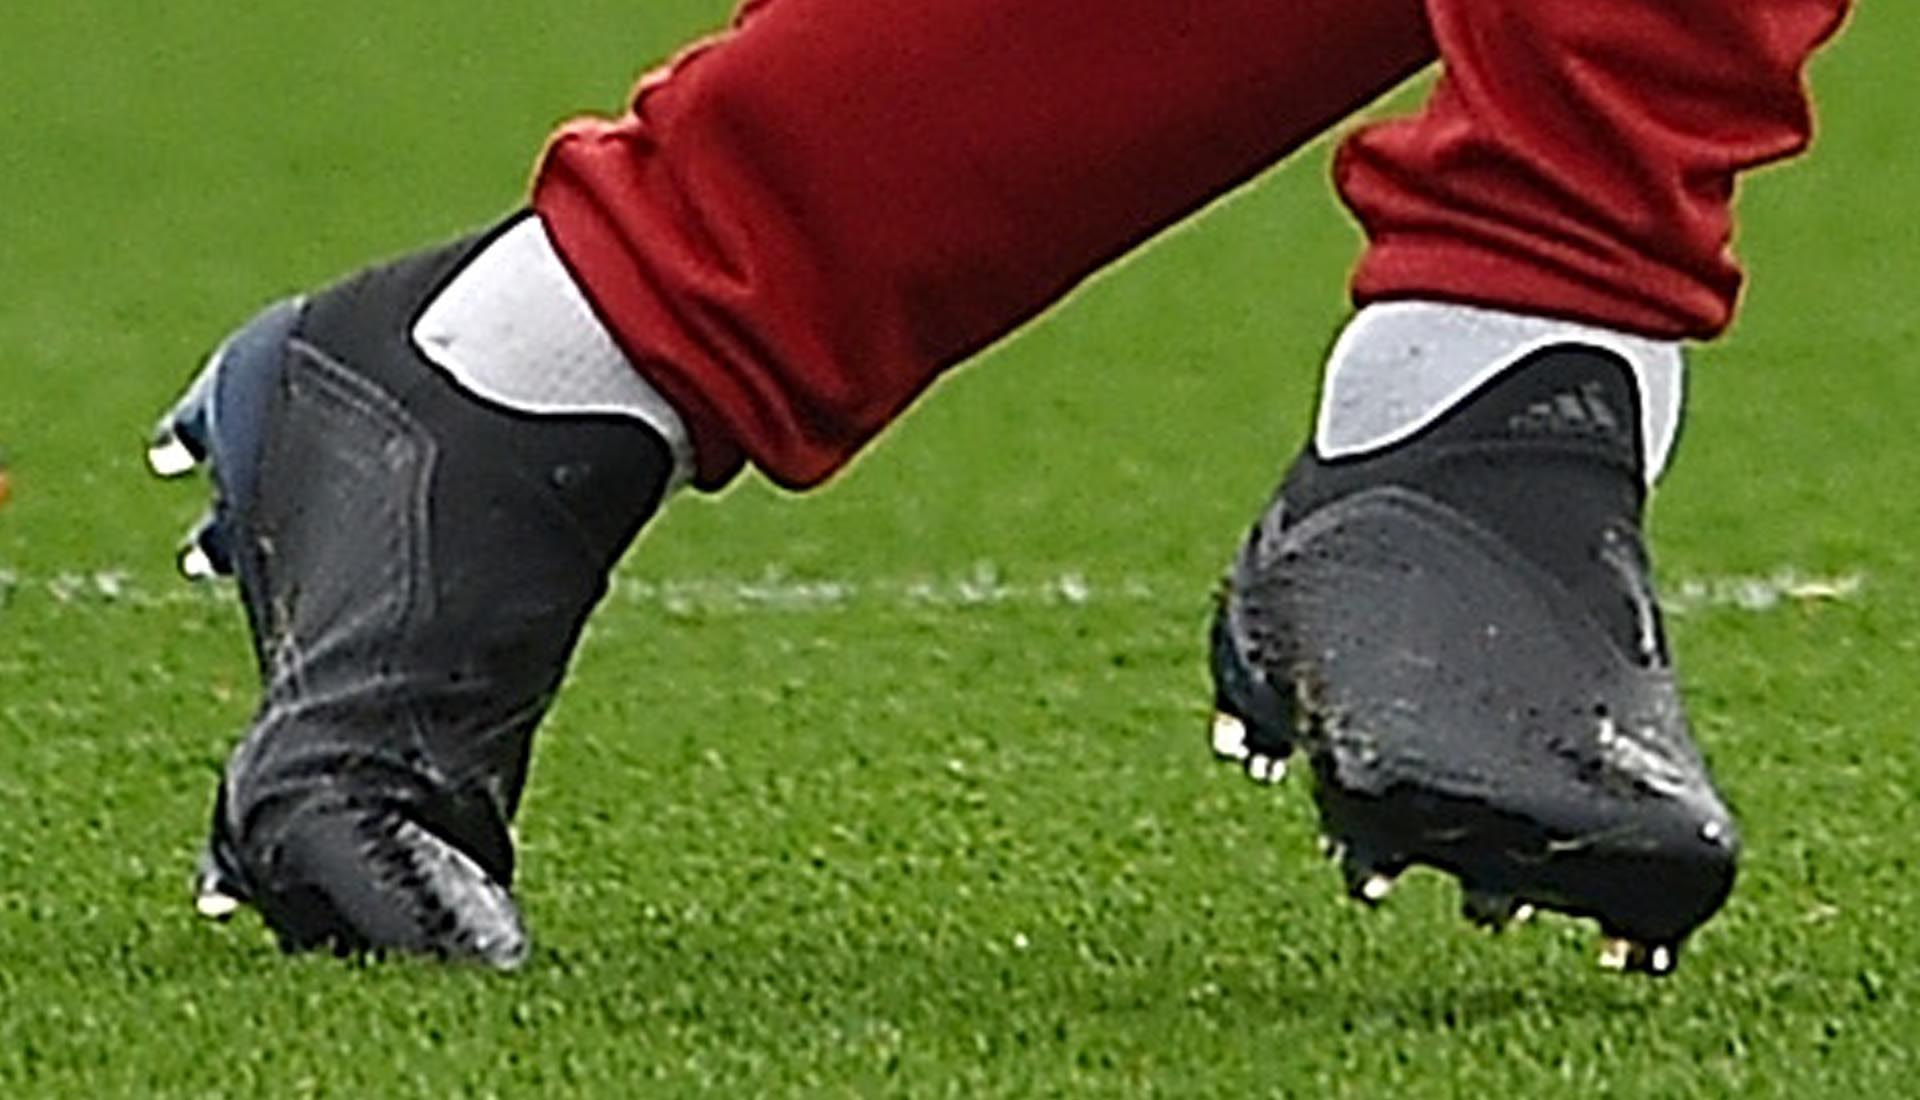 0bcd6ded4 Mo Salah Trains in Next-Gen adidas X 18+ Boots - SoccerBible.